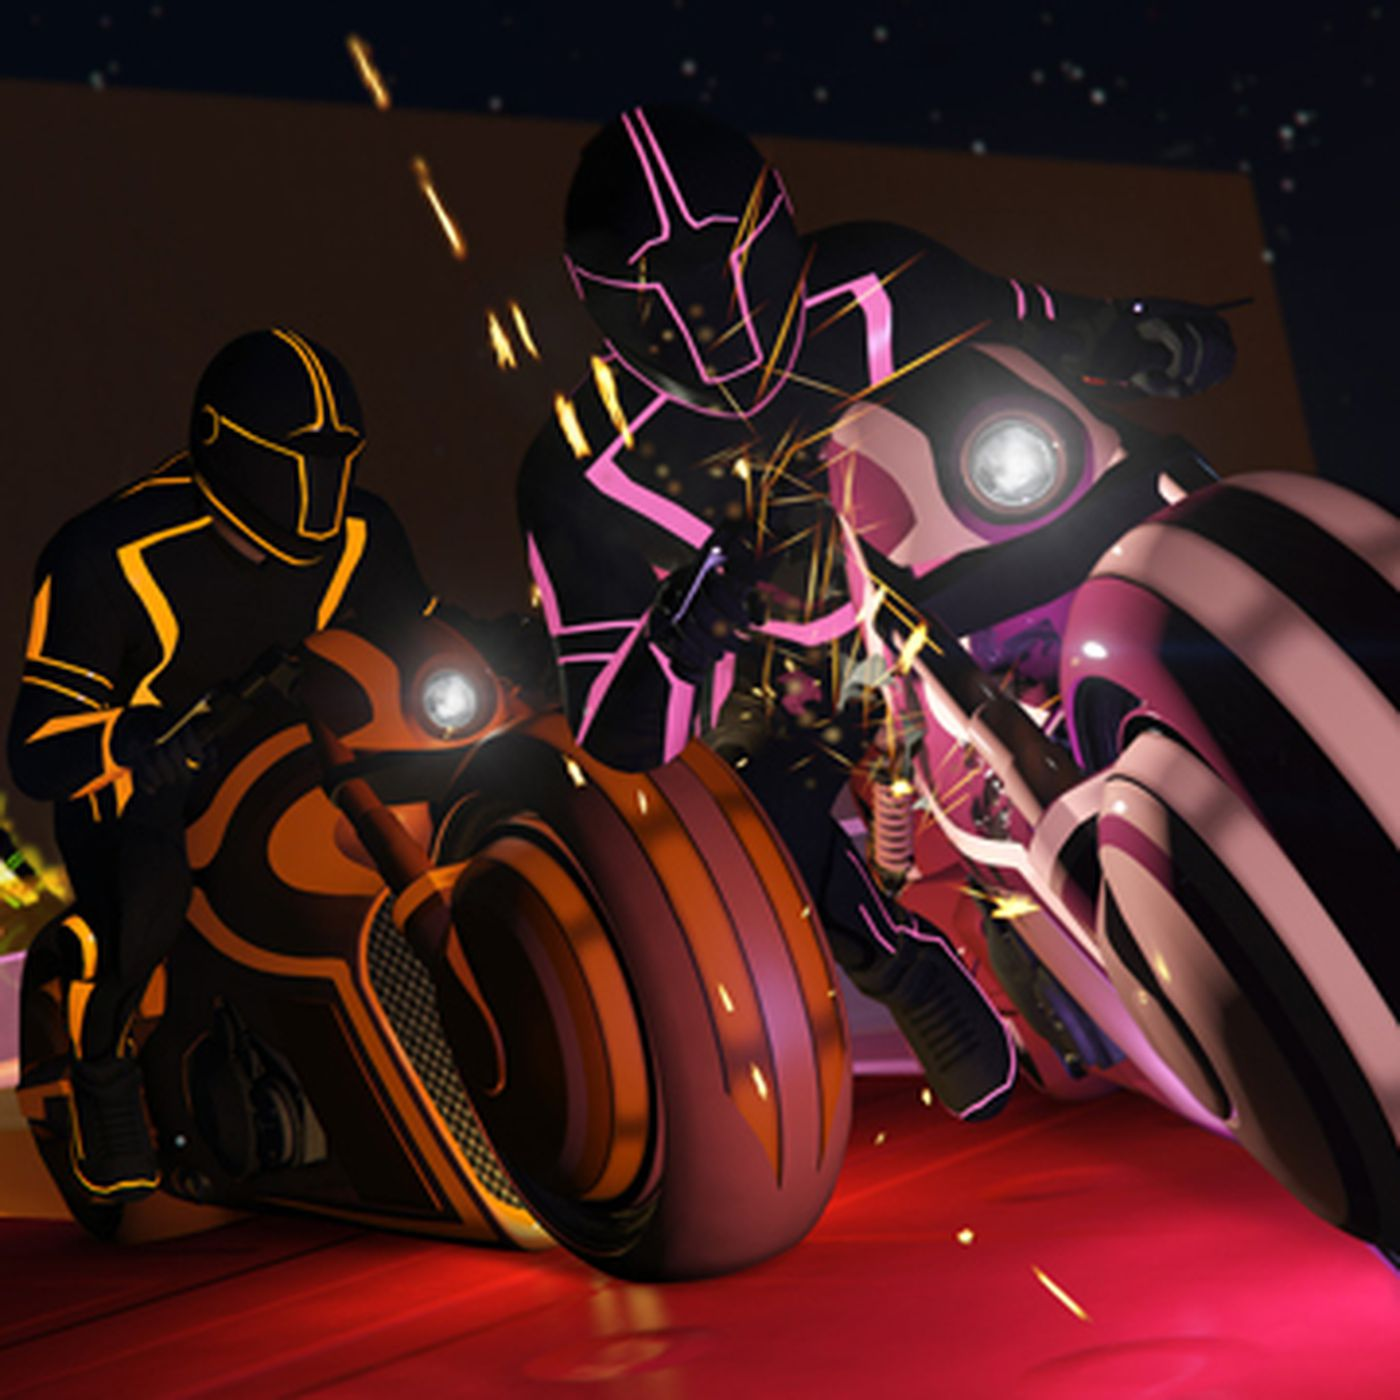 You can ride a Tron light cycle in GTA Online - The Verge